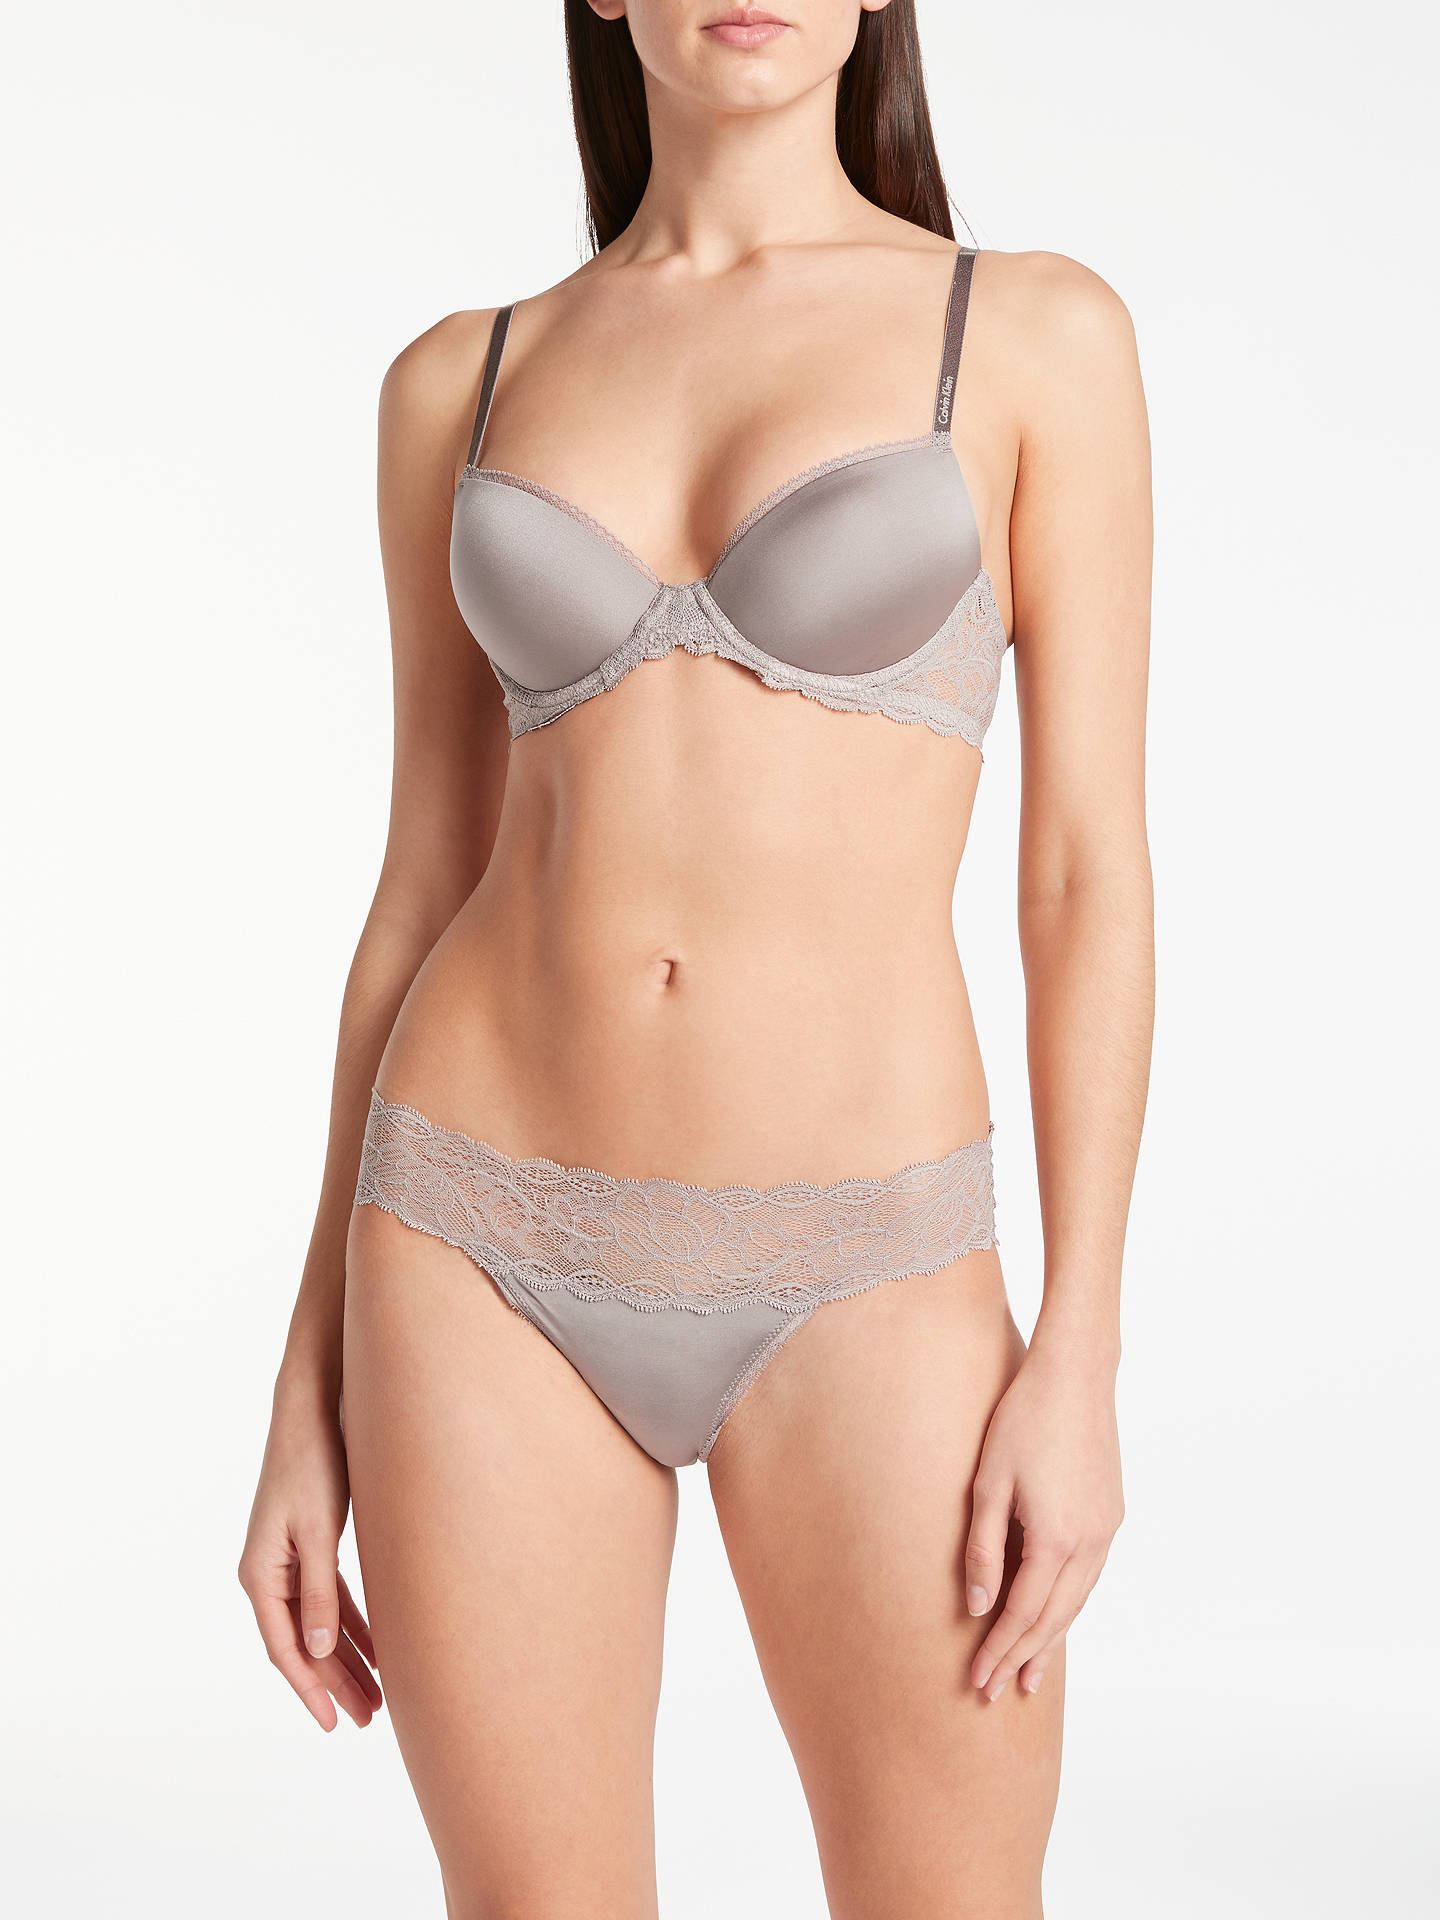 Buy Calvin Klein Underwear Seductive Comfort Lace Bikini Briefs, Grey Sand, S Online at johnlewis.com